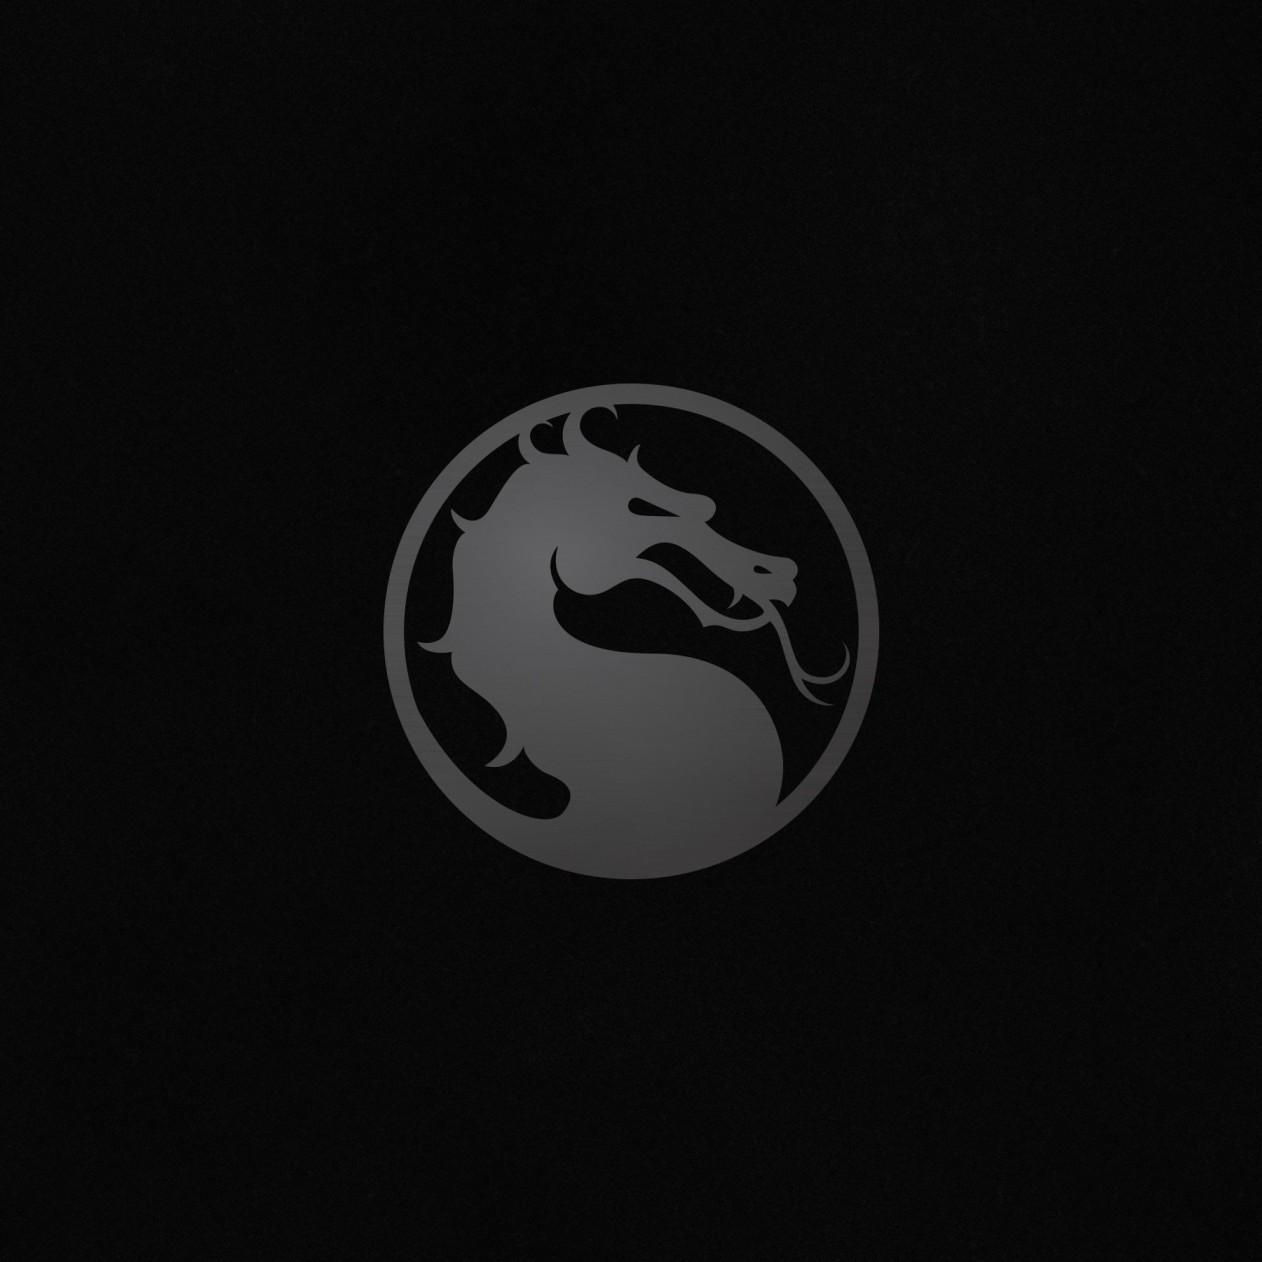 Mortal Kombat X Logo Wallpaper for Apple iPad mini